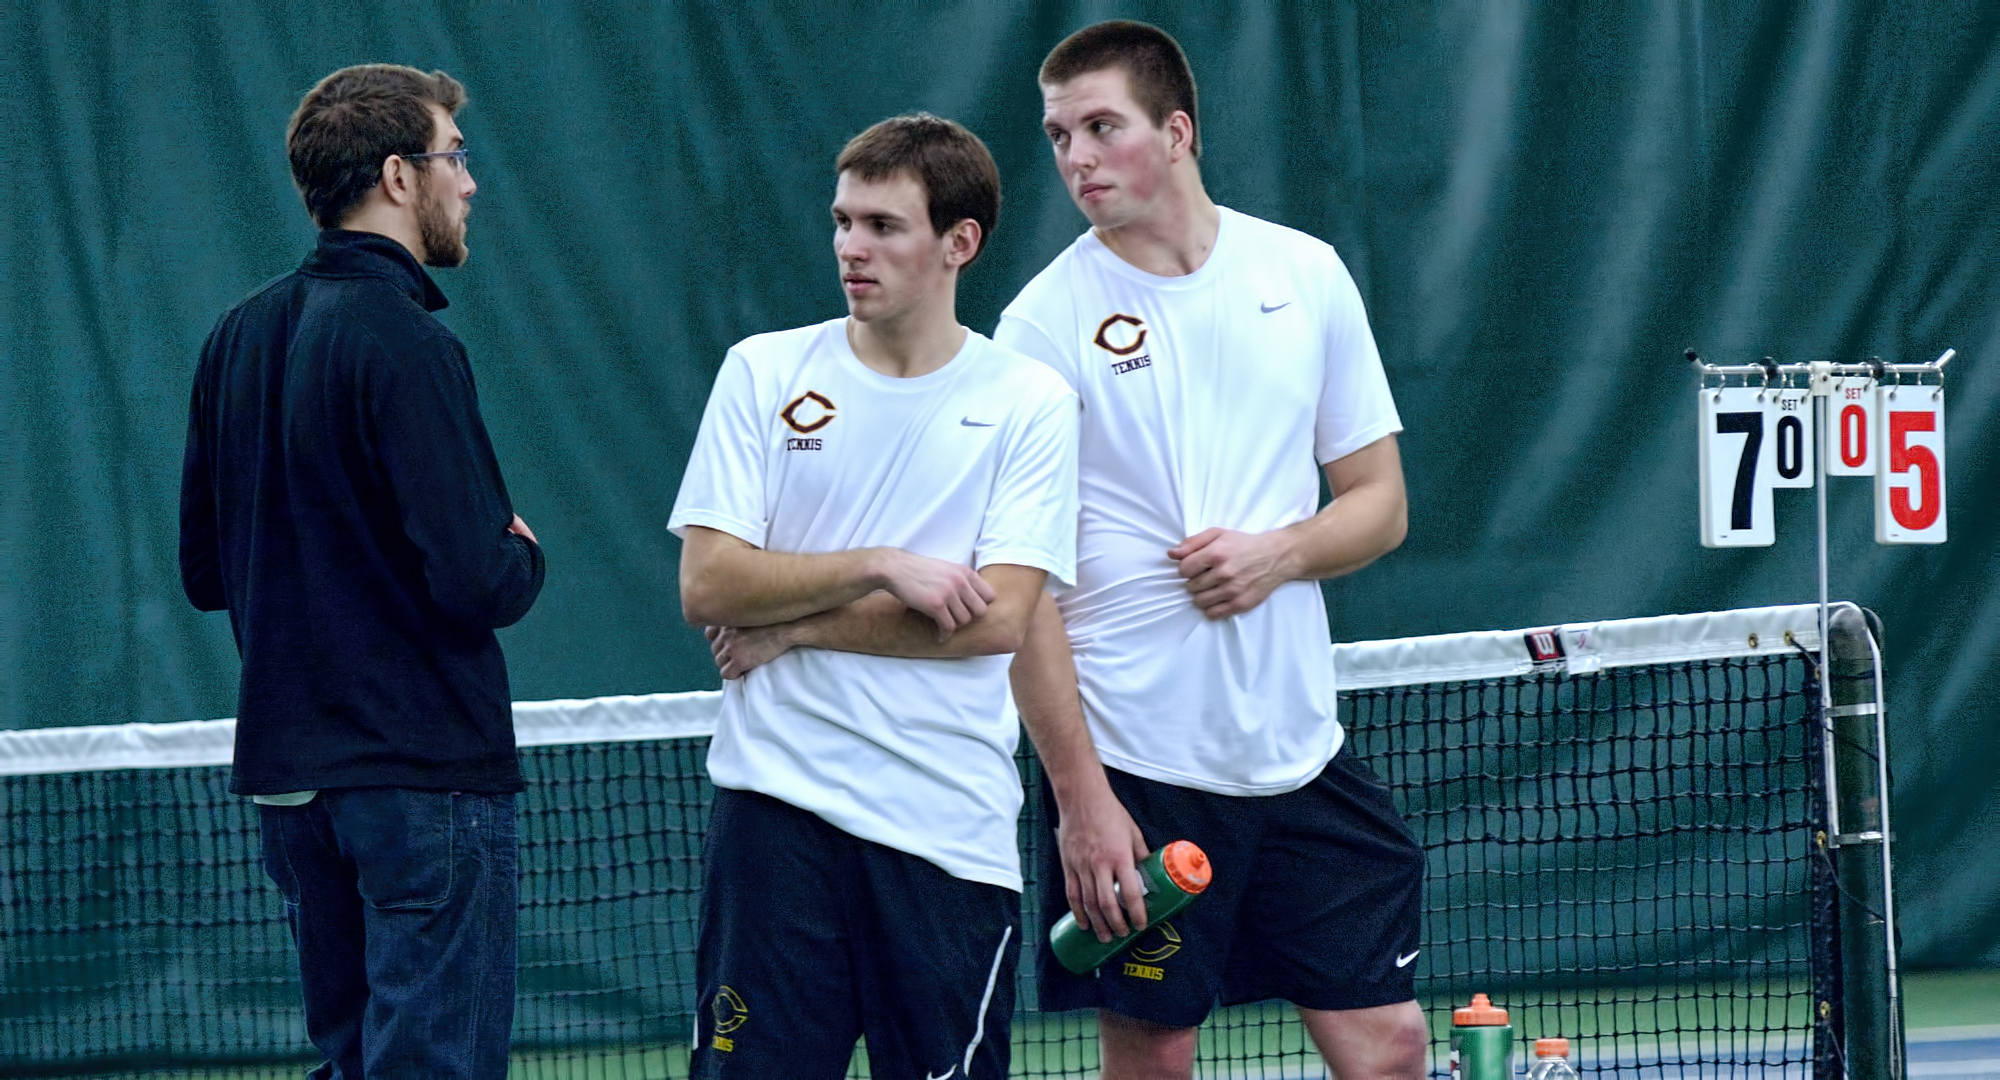 The Cobber No.1 doubles team of David Youngs (L) and Isaac Toivonen talk with head coach Joseph Murrey. The tandem won their bout at No.1 doubles and both players claimed singles wins in CC's 5-4 win at St. Mary's.